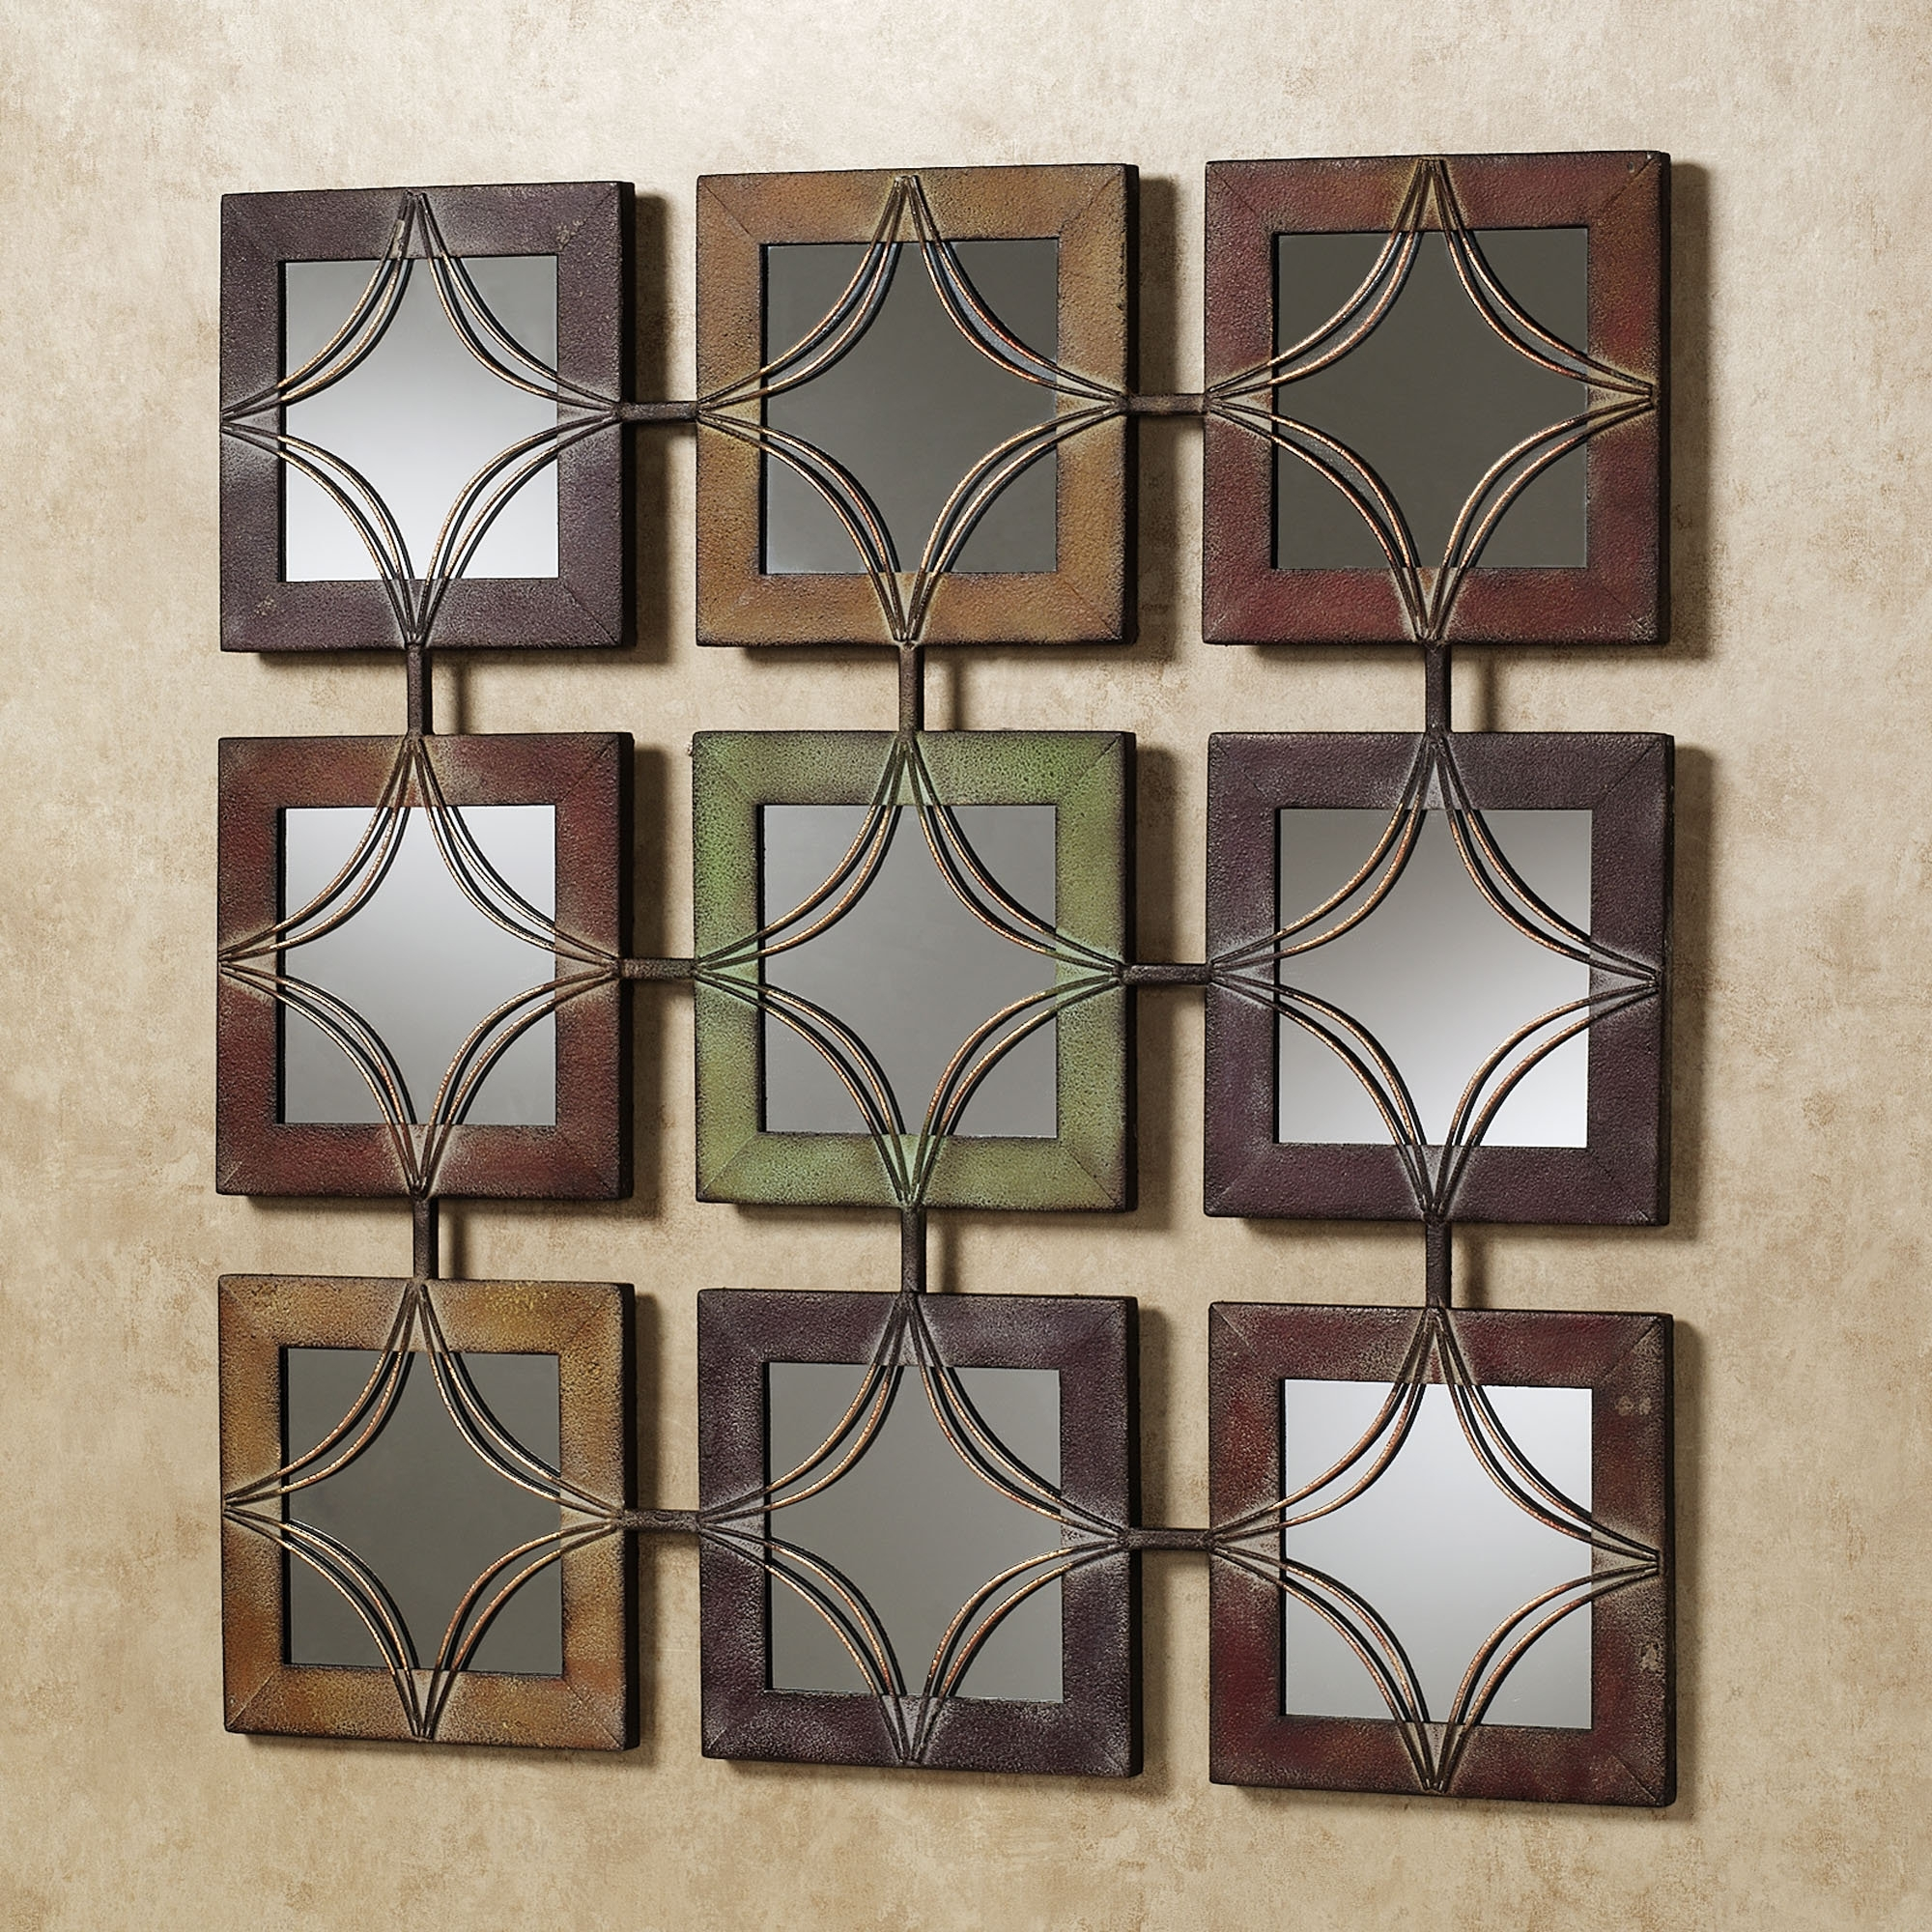 Wire Wall Art Decors Pertaining To Most Up To Date Wall Art Decor: Domini Metal Mirrored Wall Art Textured Square (View 13 of 15)